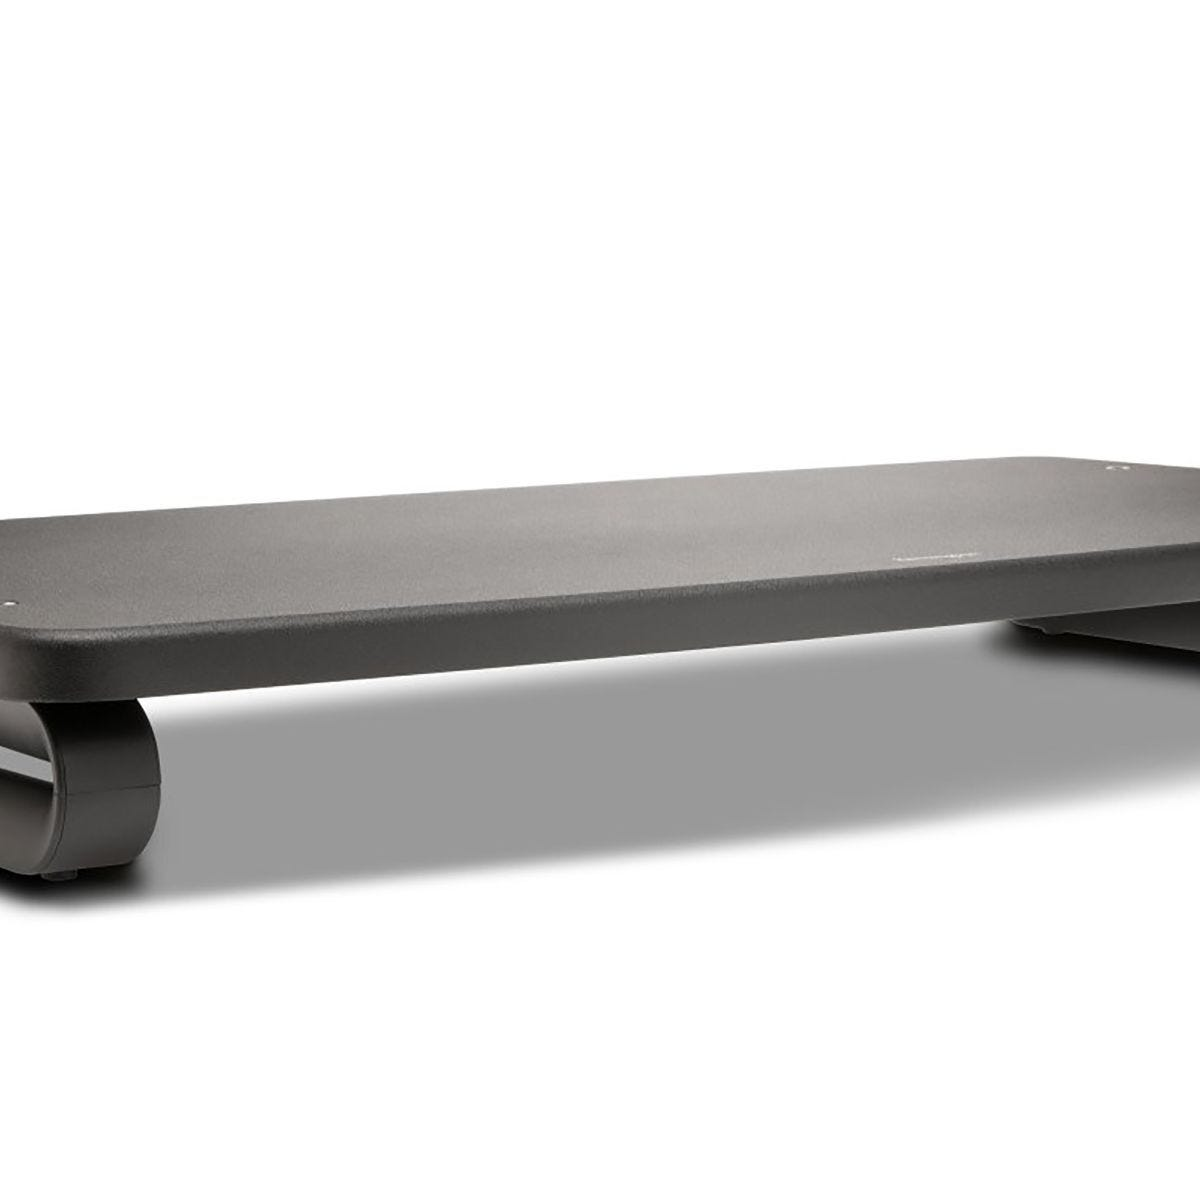 Kensington SmartFit Monitor Stand Extra Wide up to 27 inch Screens